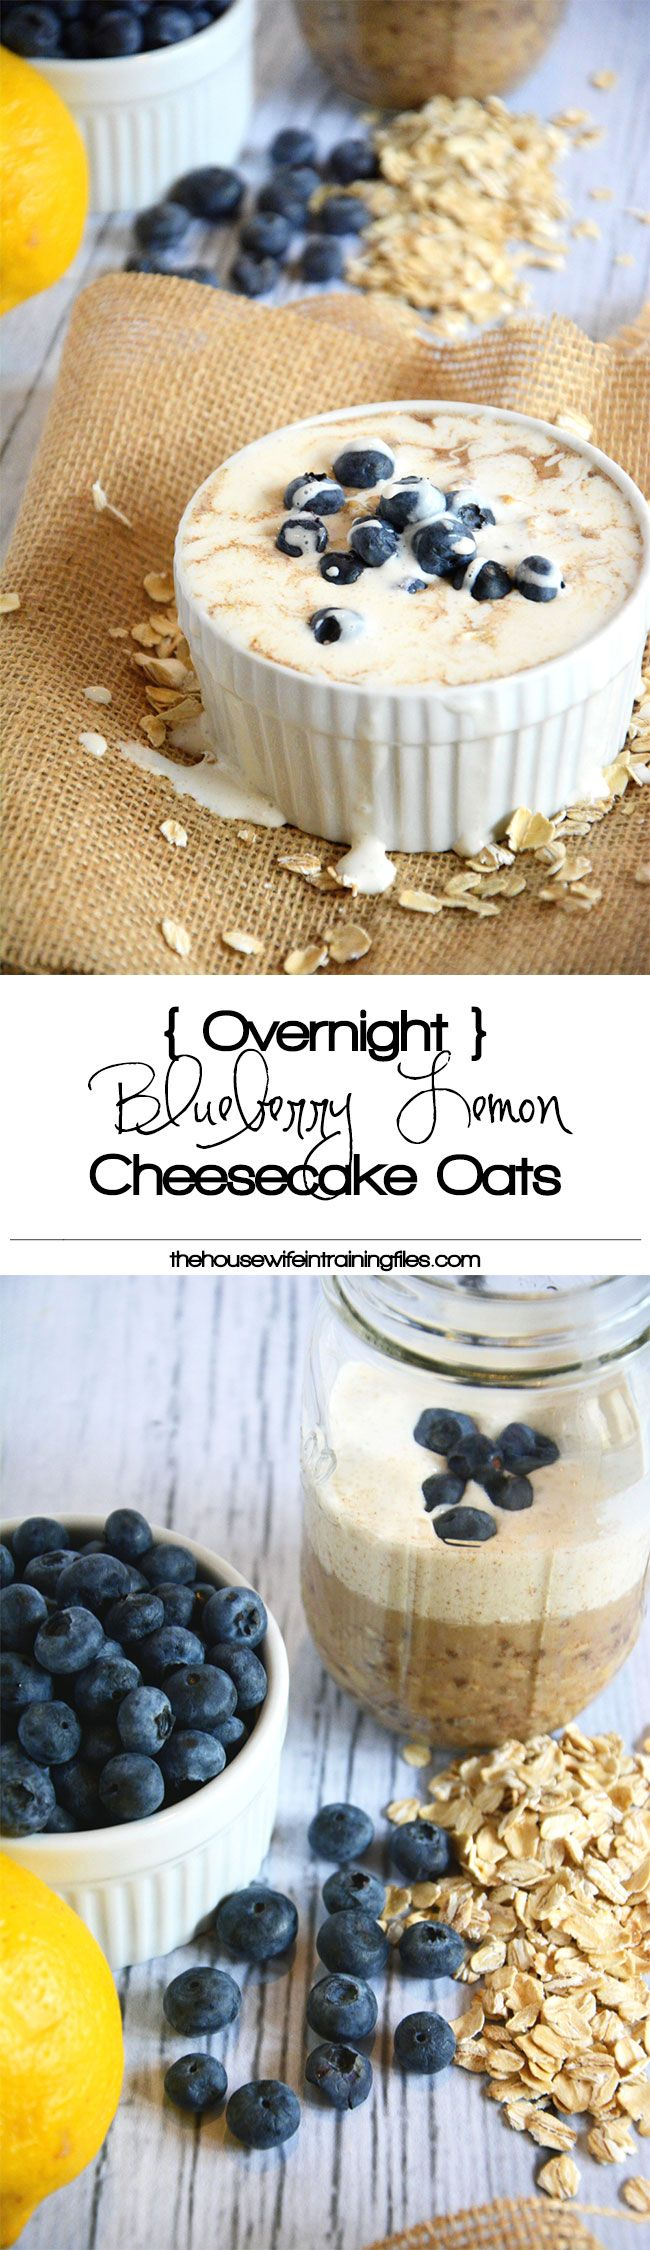 Cheesecake flavored oats bursting with lemon and blueberries, all come together in a protein packed, make ahead breakfast! #overnightoats #cheesecake #glutenfree